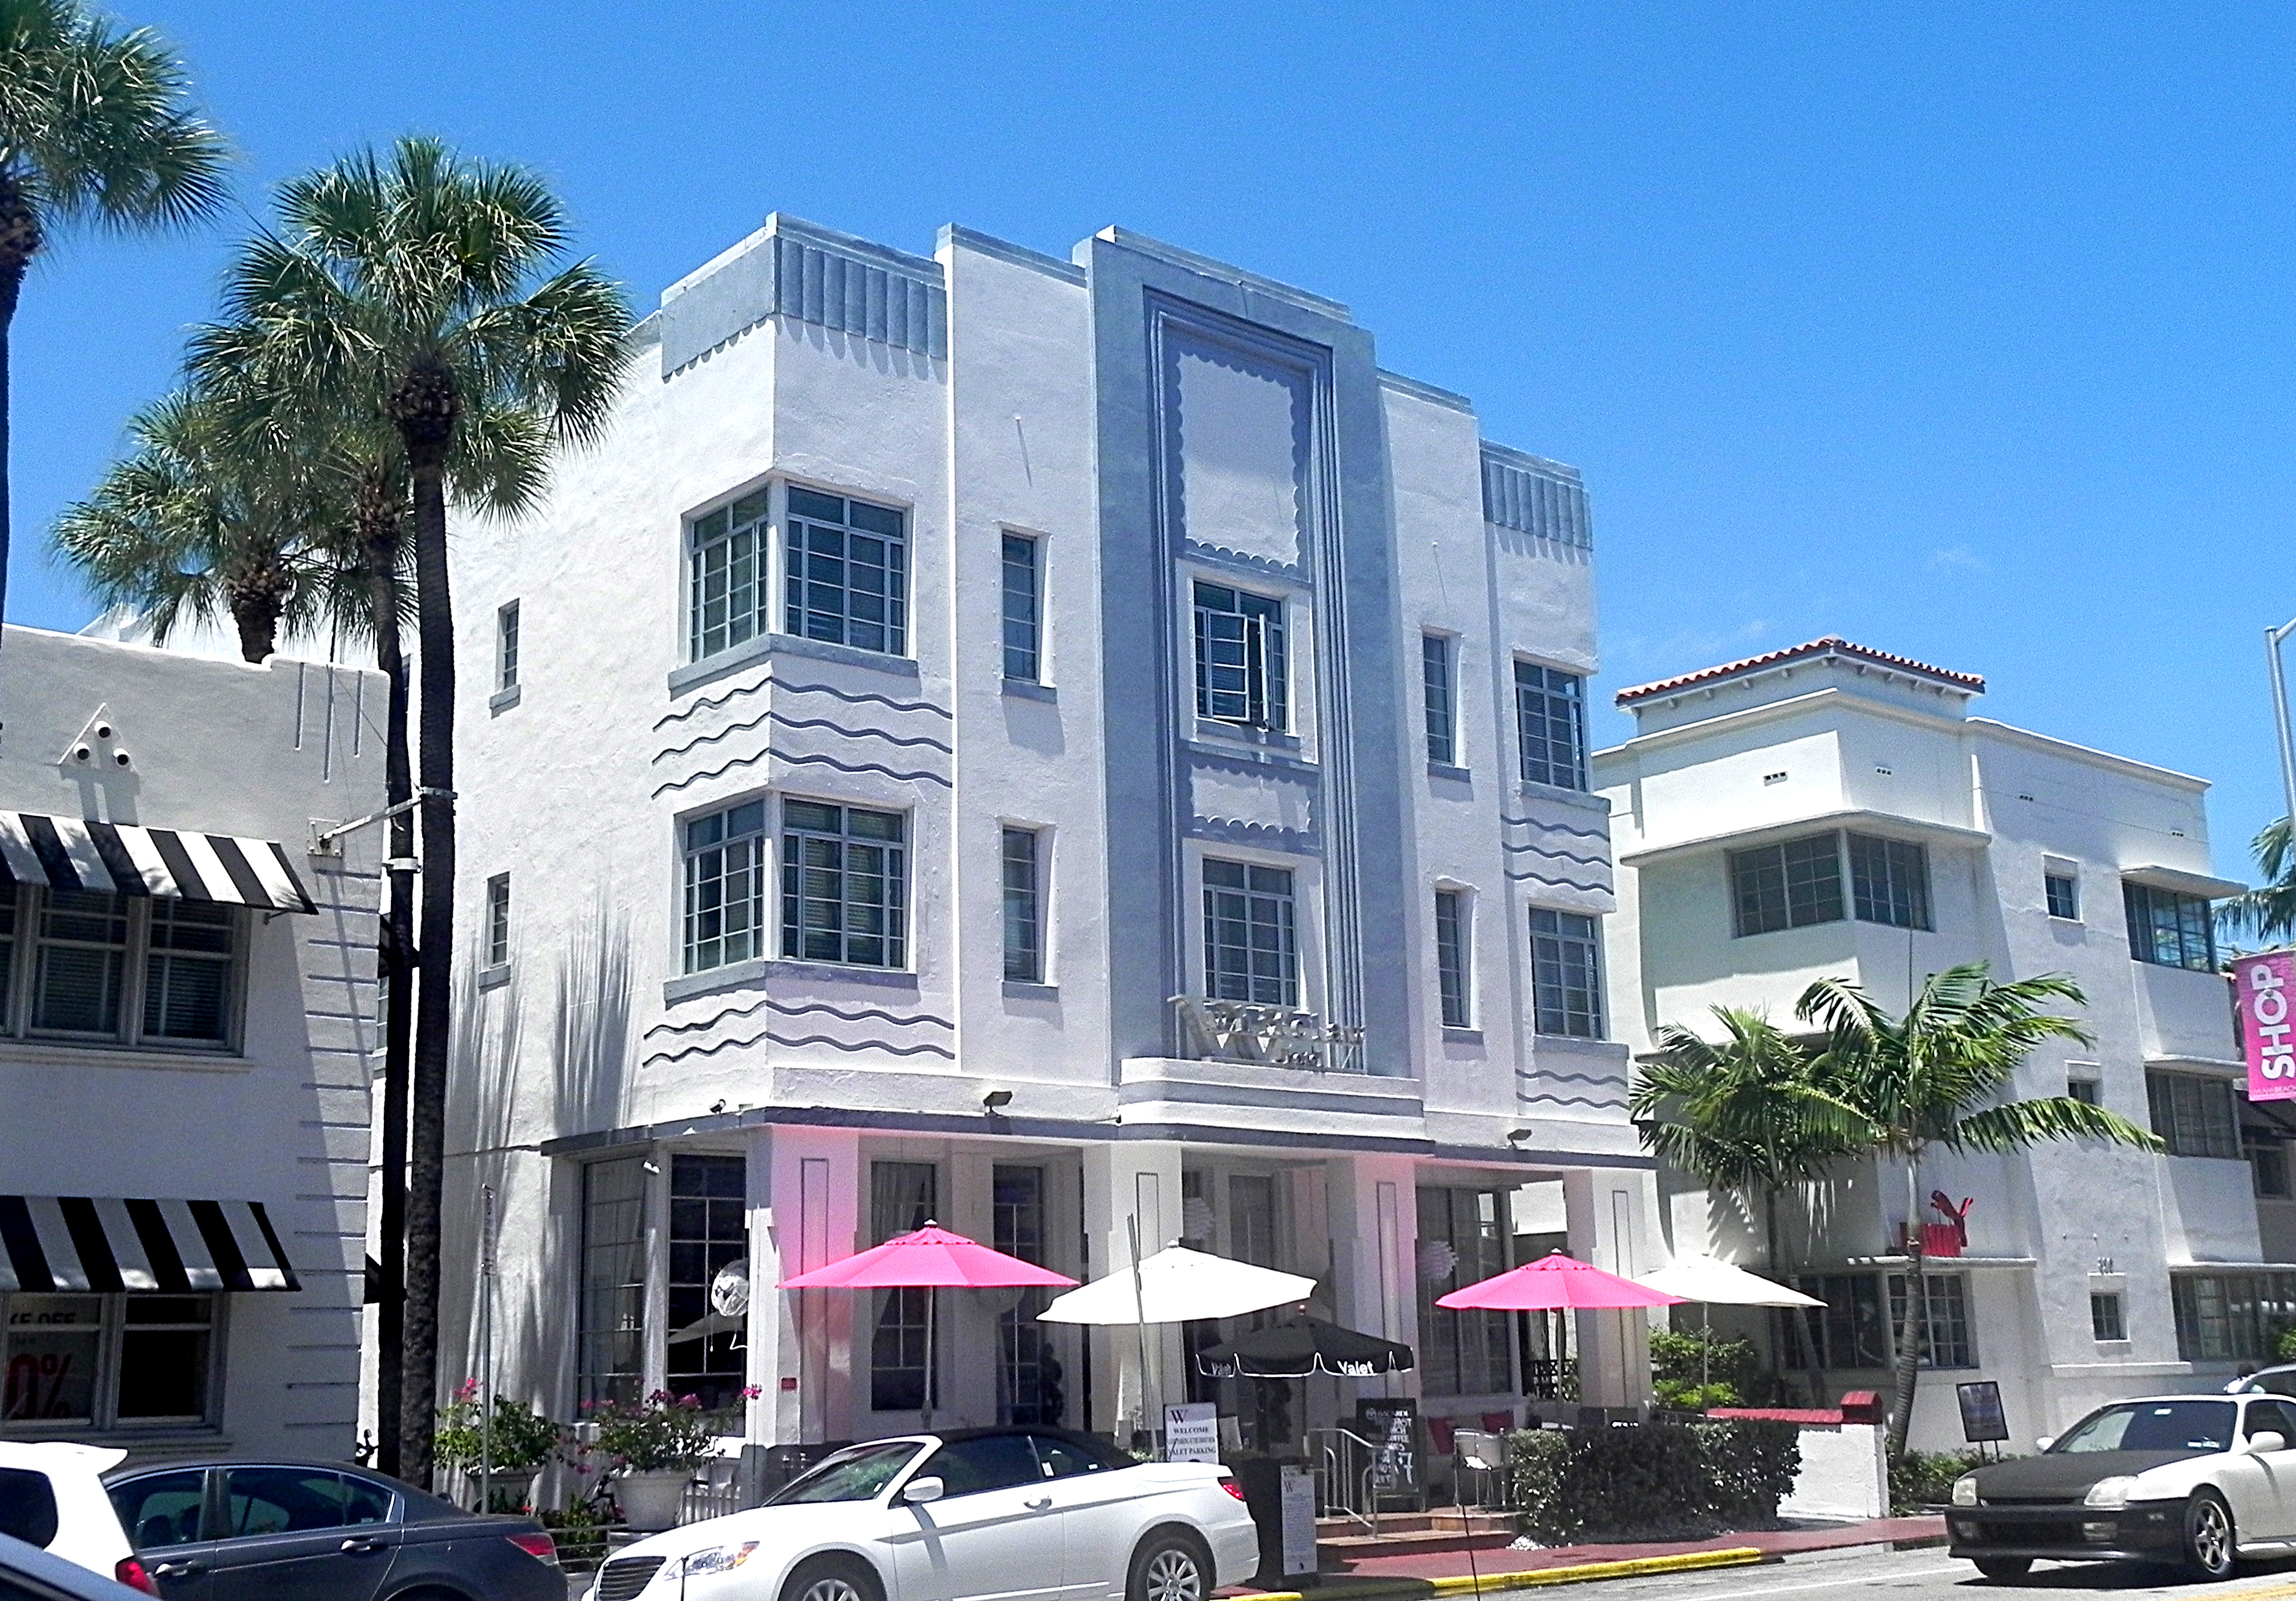 South Beach Hotels Myrtle Beach Sc